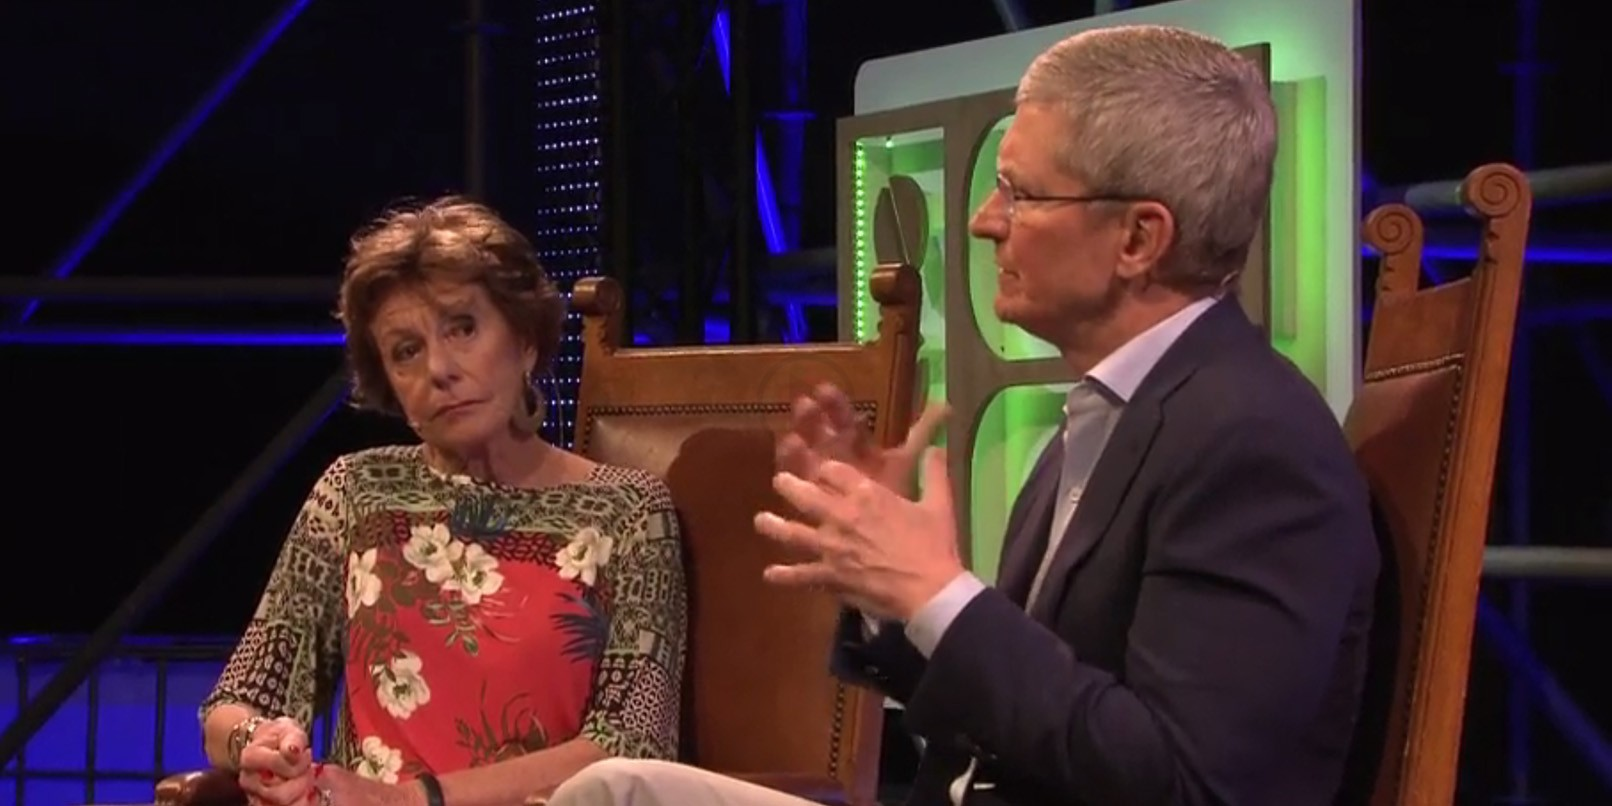 Tim Spoke With Neelie Kroes in an Exclusive Interview Fest